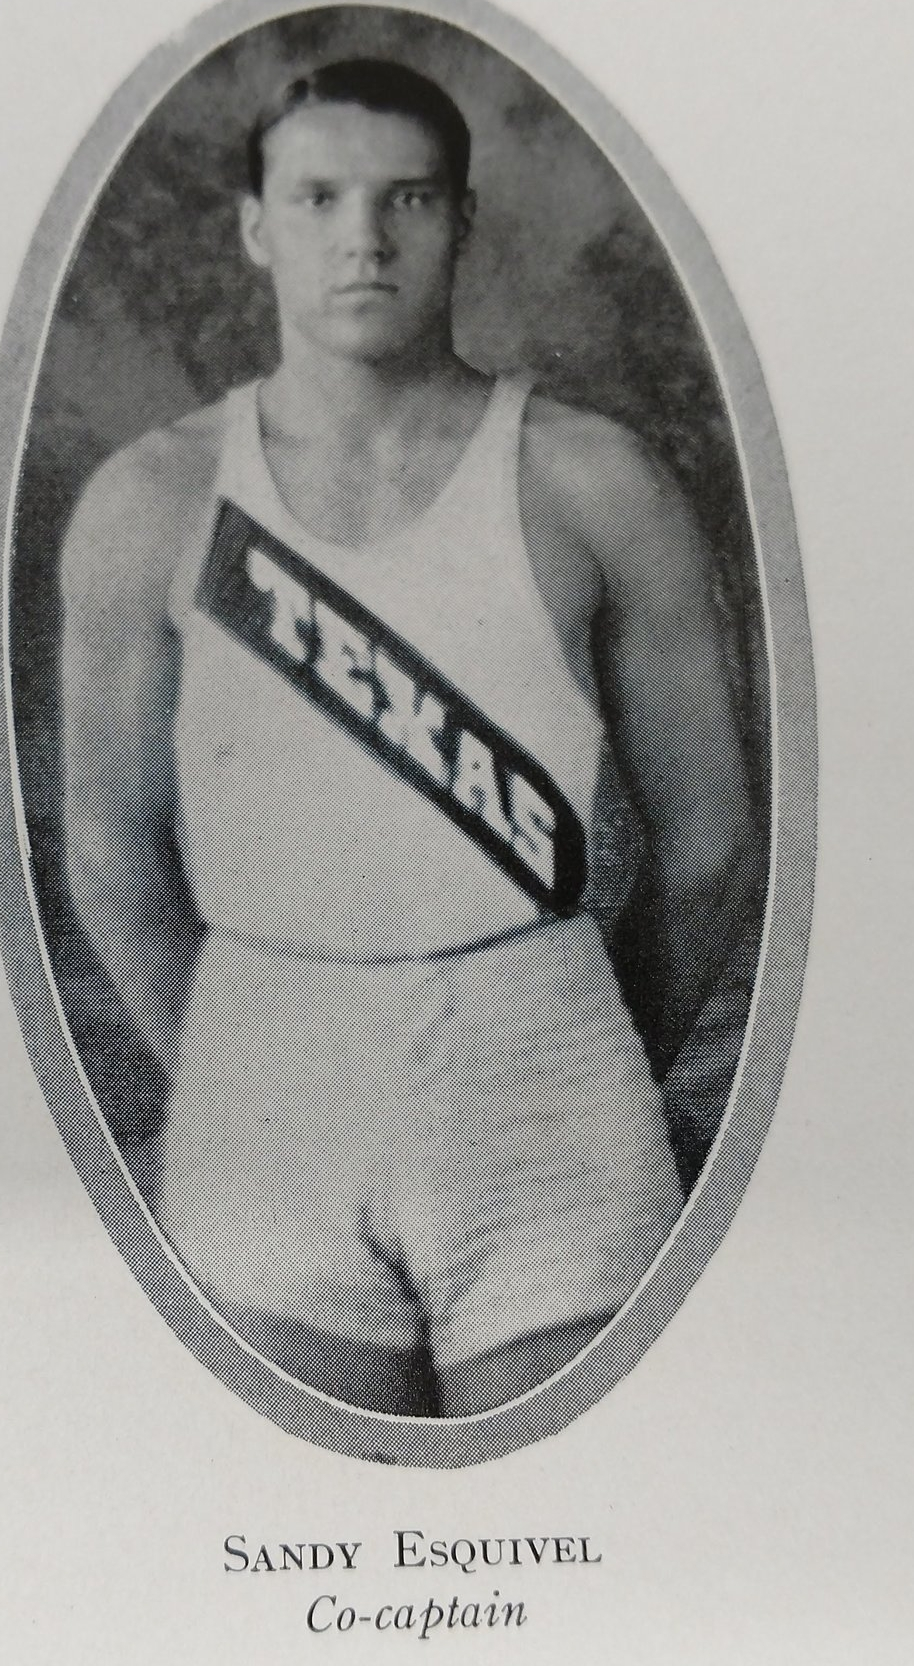 Sandi Esquivel - Sandi Esquivel is an All American and Conference Champion in Cross country in 1924 and 1925